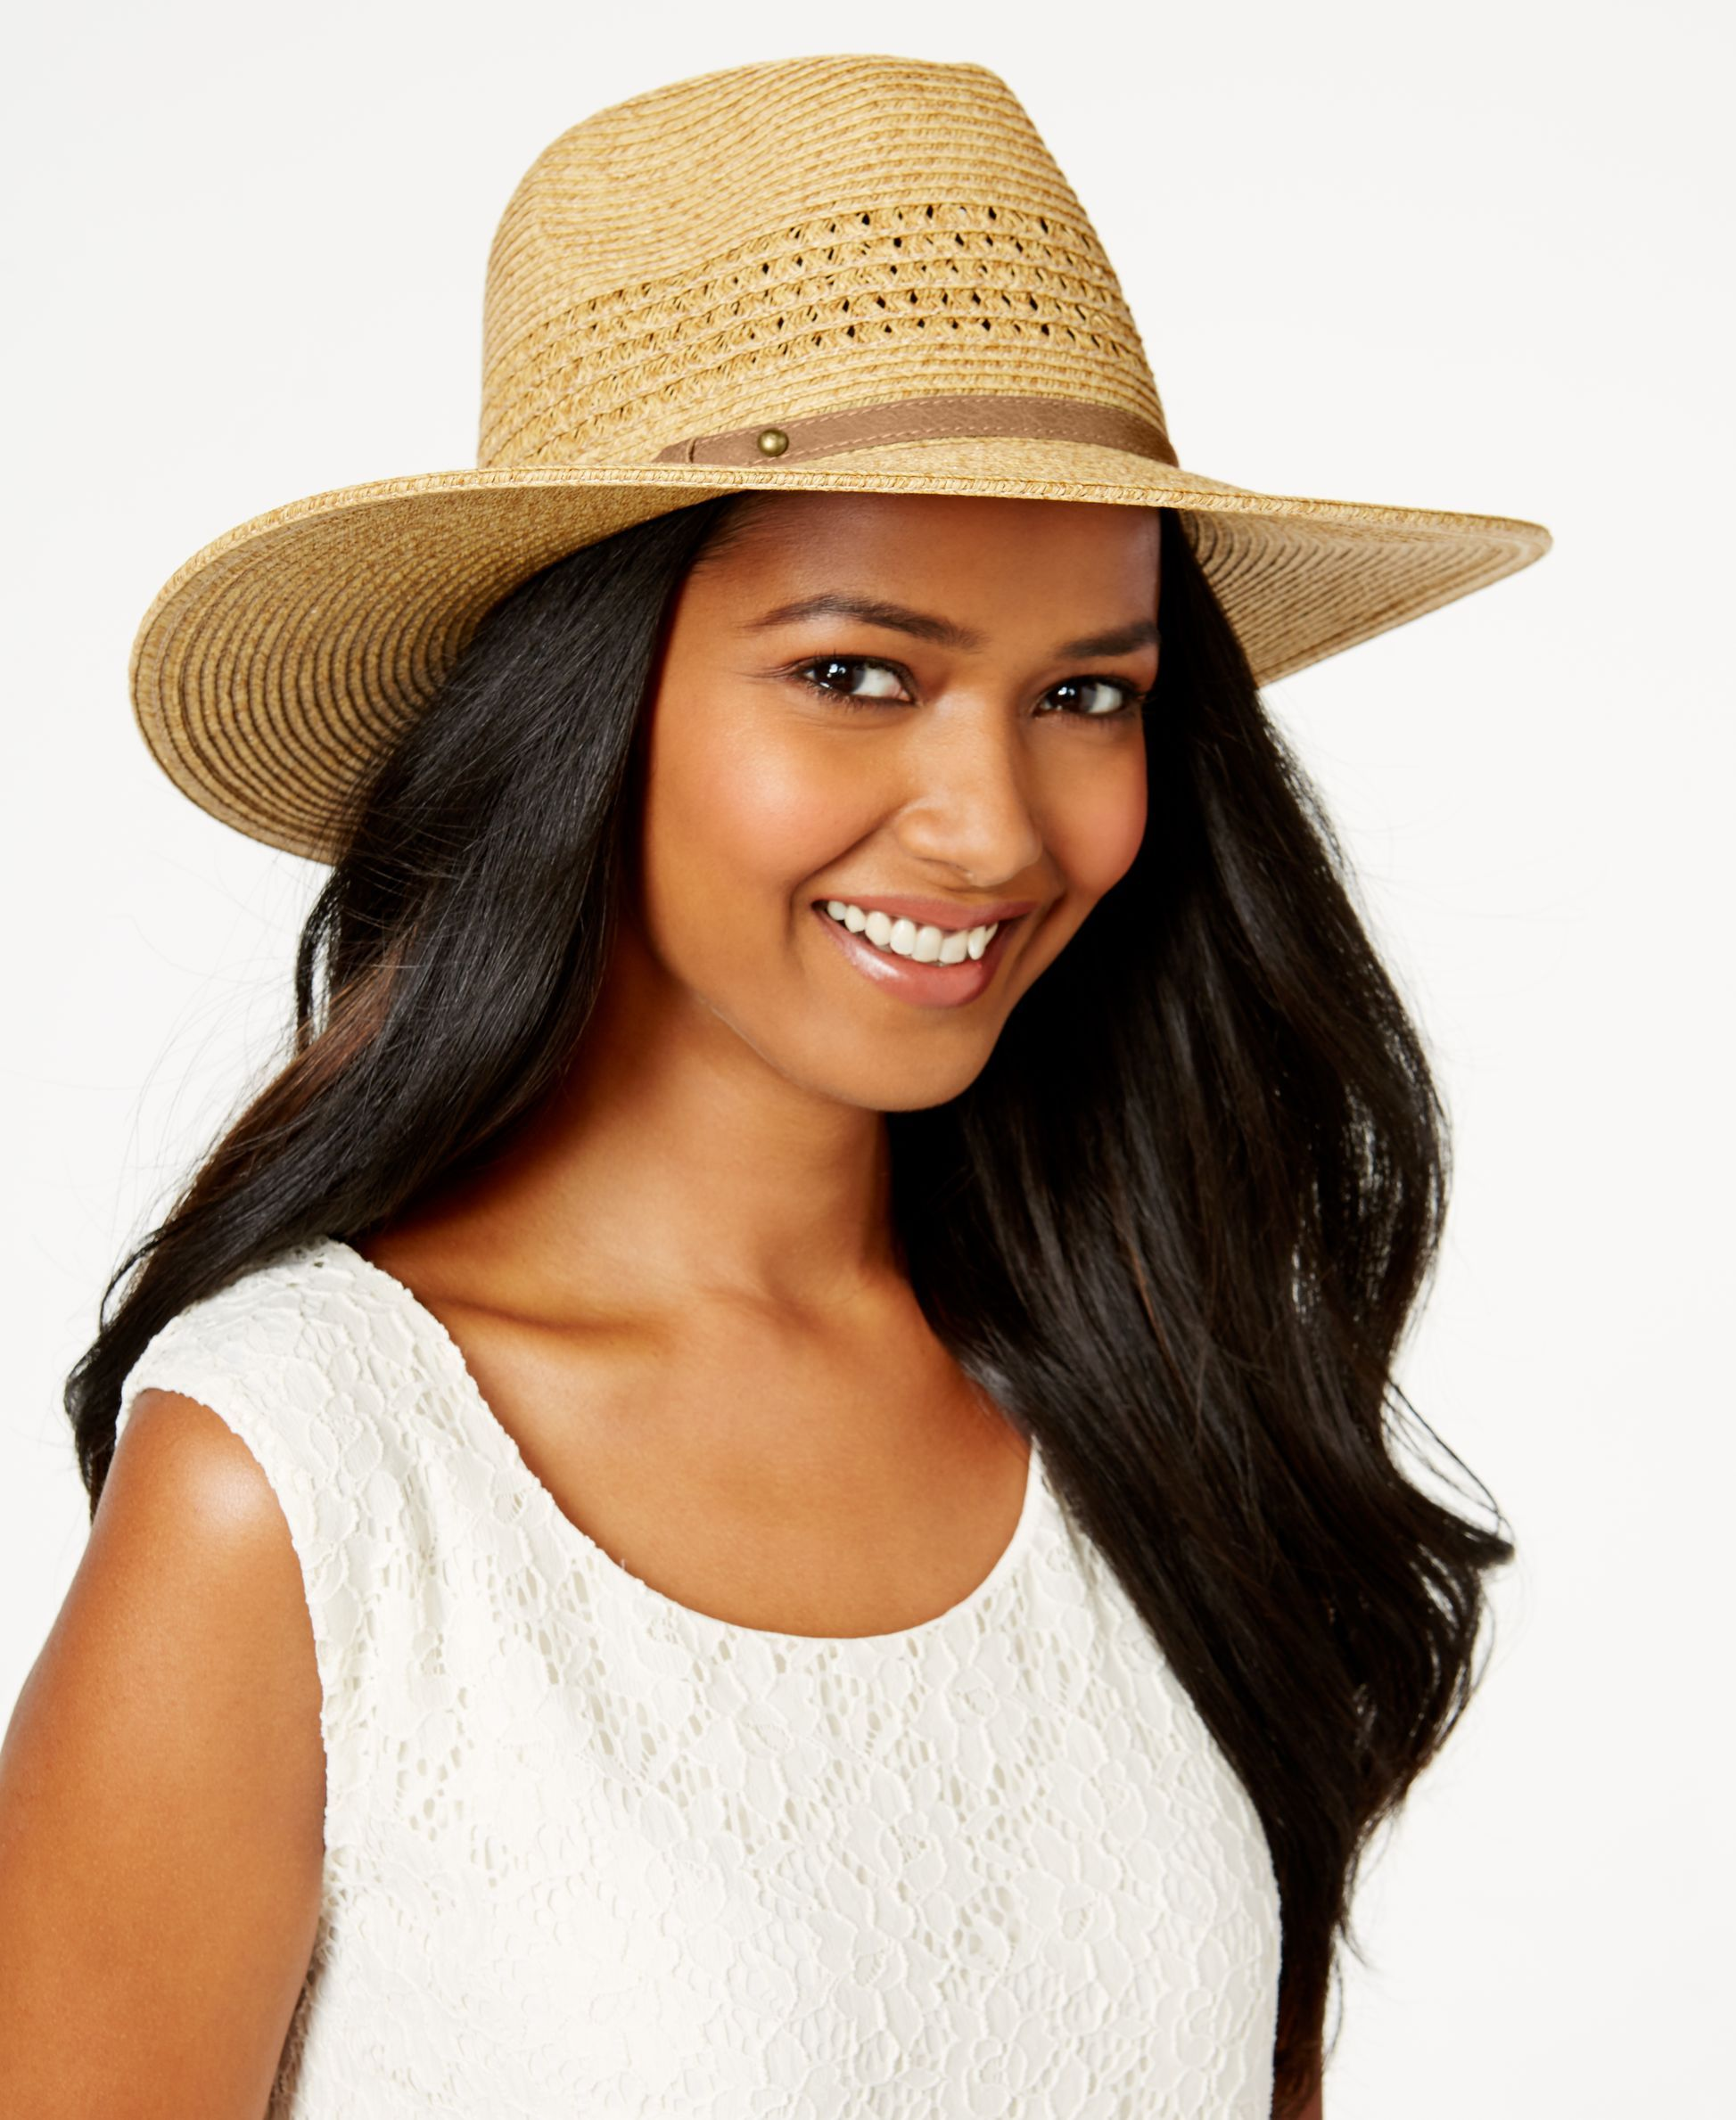 efdab0af777 Take your style to go with this trendy rancher hat from Nine West. Its  packable shape resists bends and dents